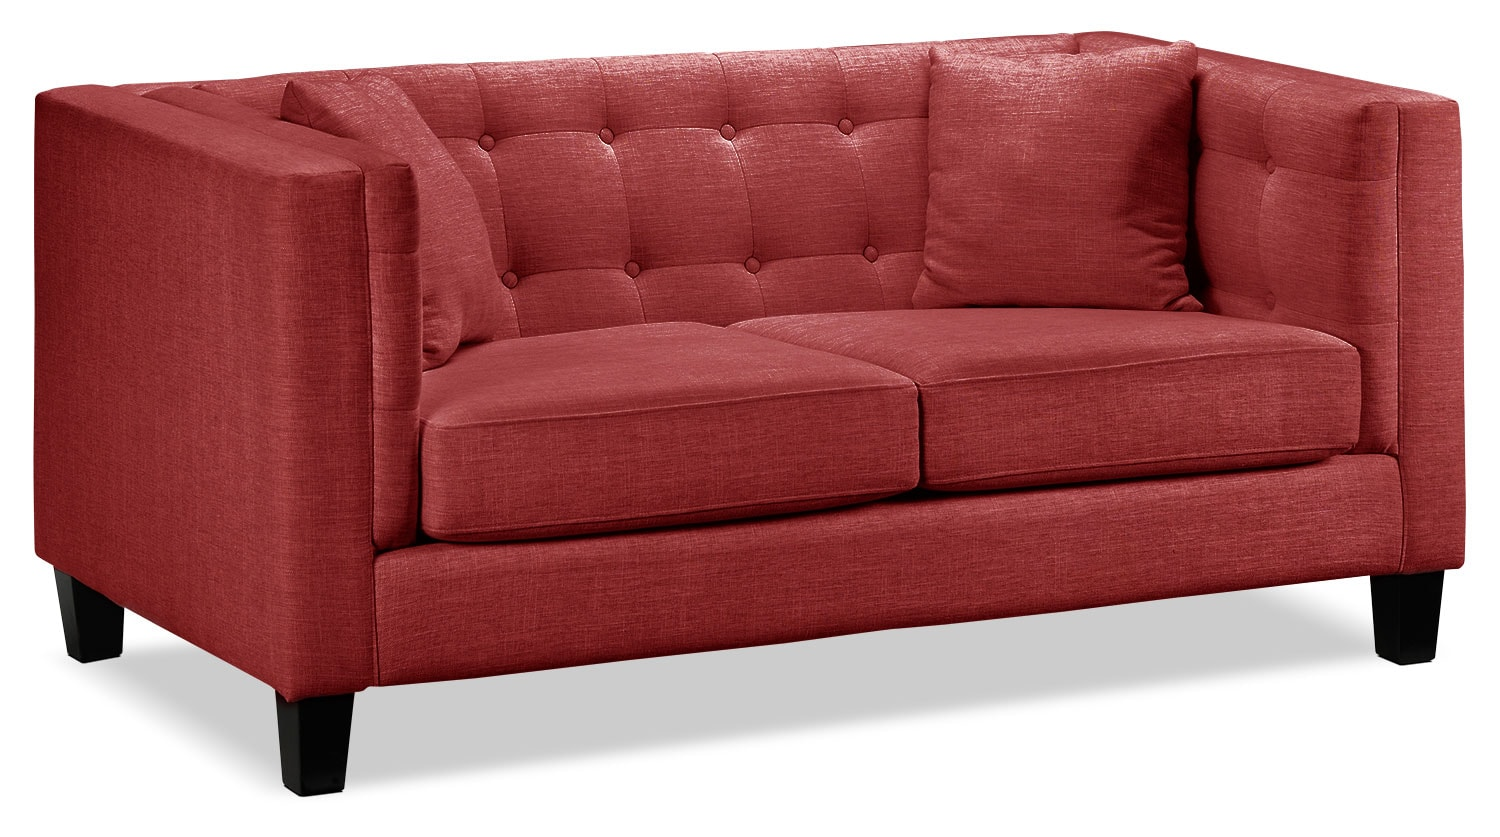 Astin Loveseat - Red